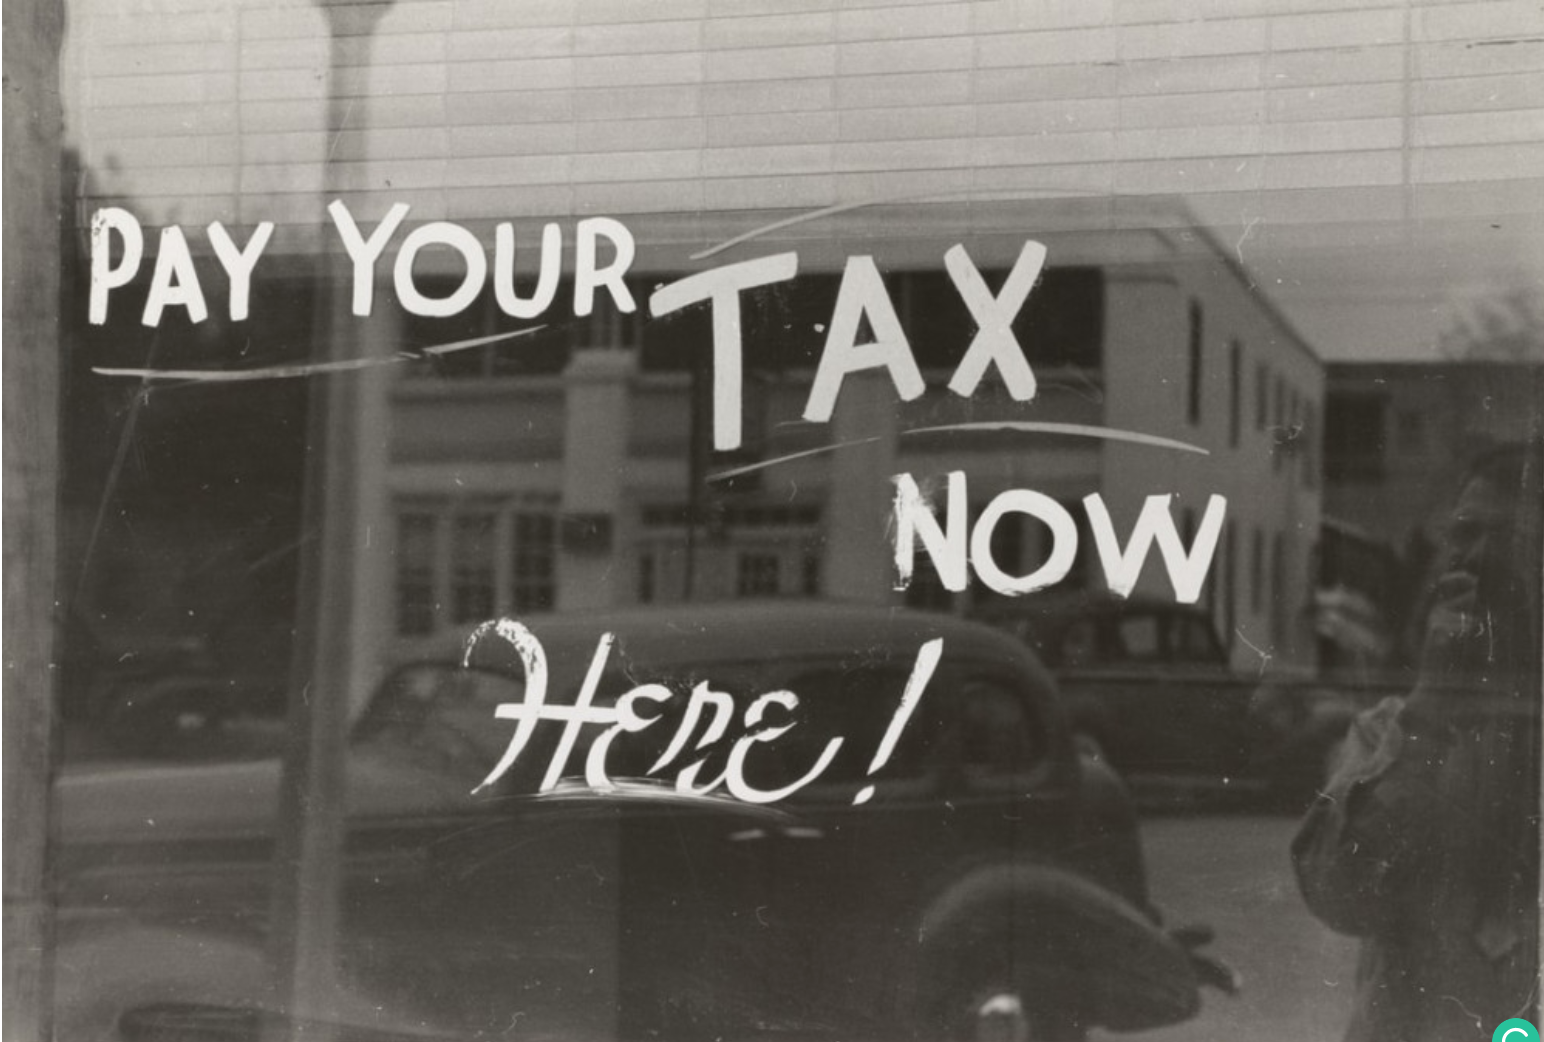 Why Do Homeowners Have to Pay Property Taxes? - Pay your tax now here sign